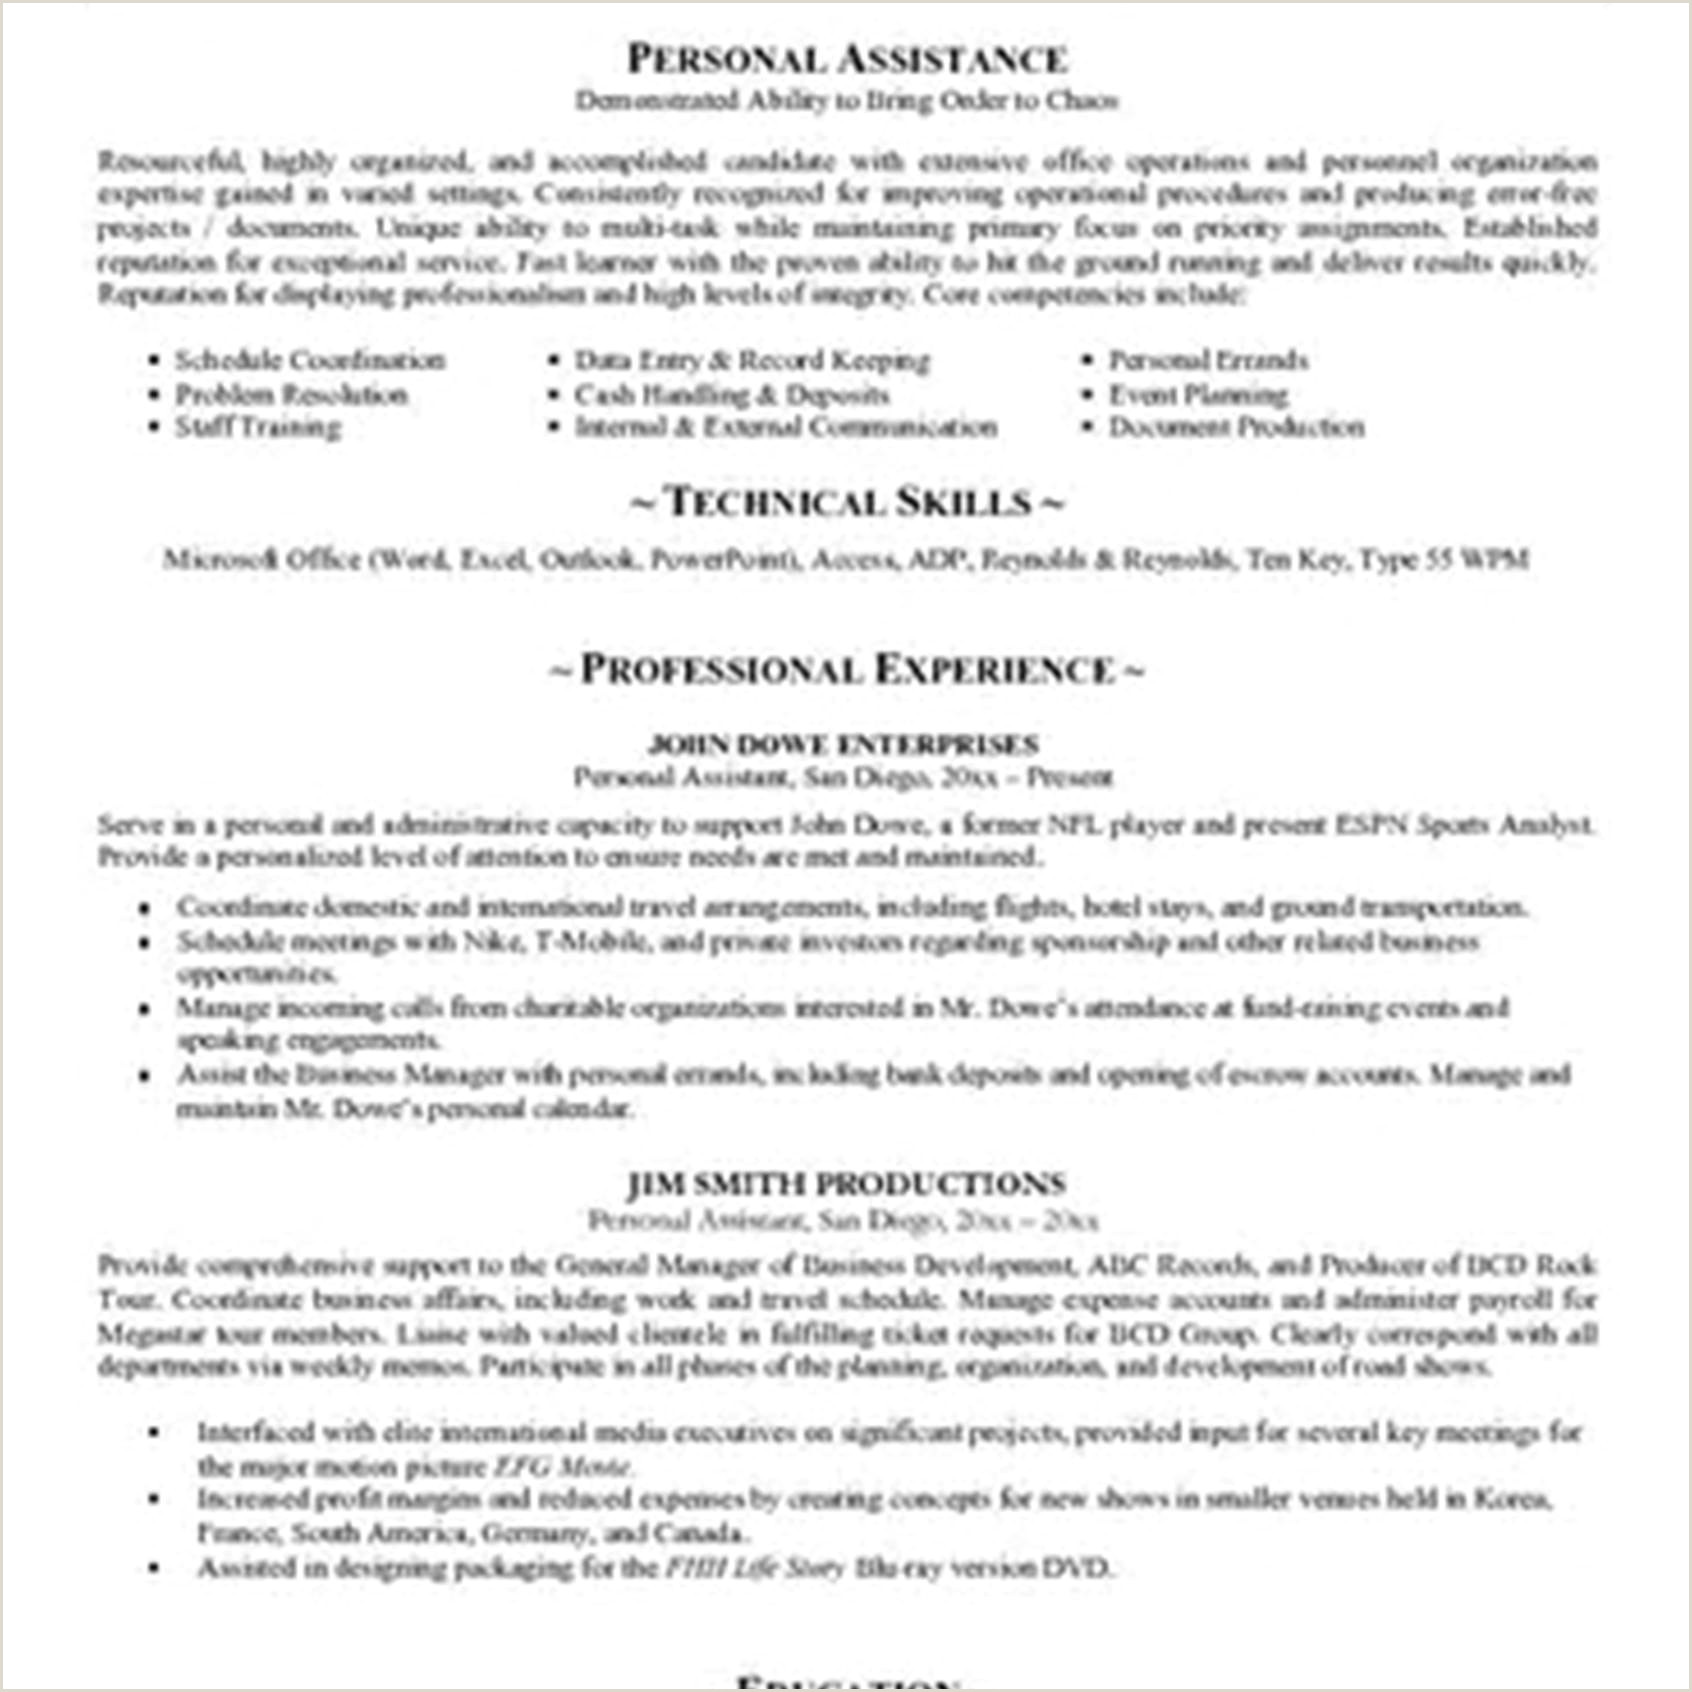 Professional format Of Writing Cv Writingume Profile Cv Personal Examples Professional for